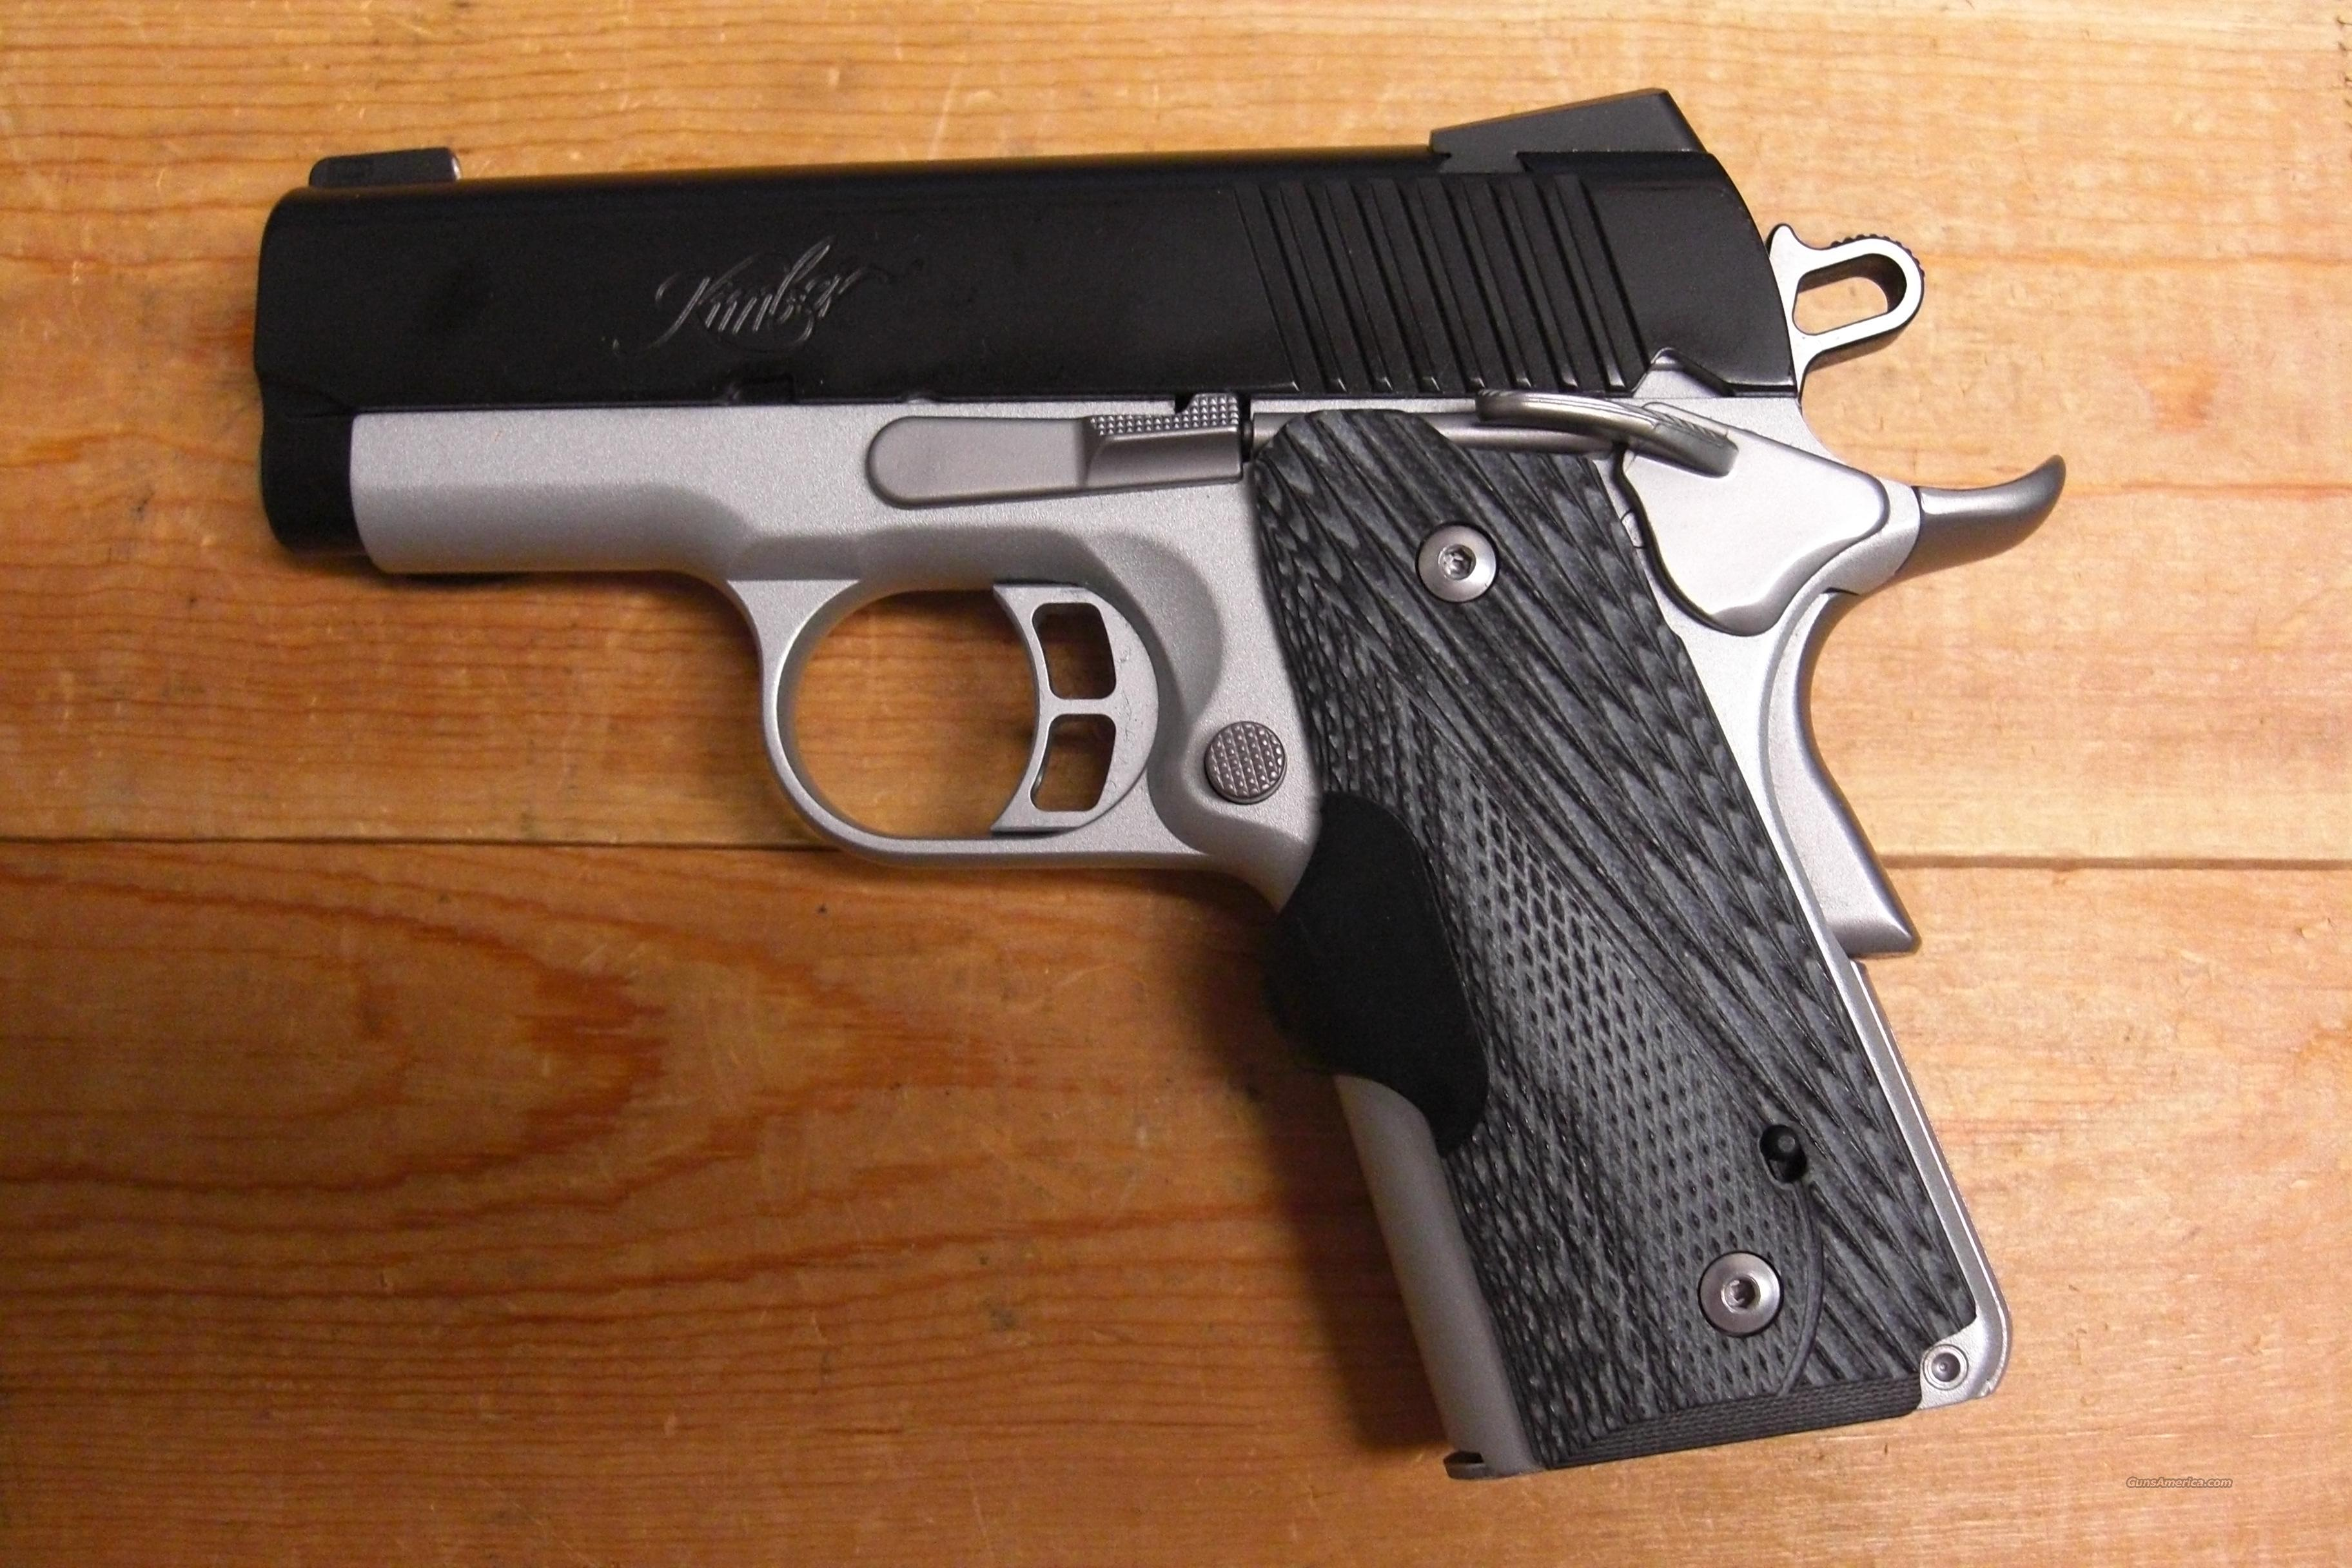 Master Carry Ultra w/Laser Grip, night sights  Guns > Pistols > Kimber of America Pistols